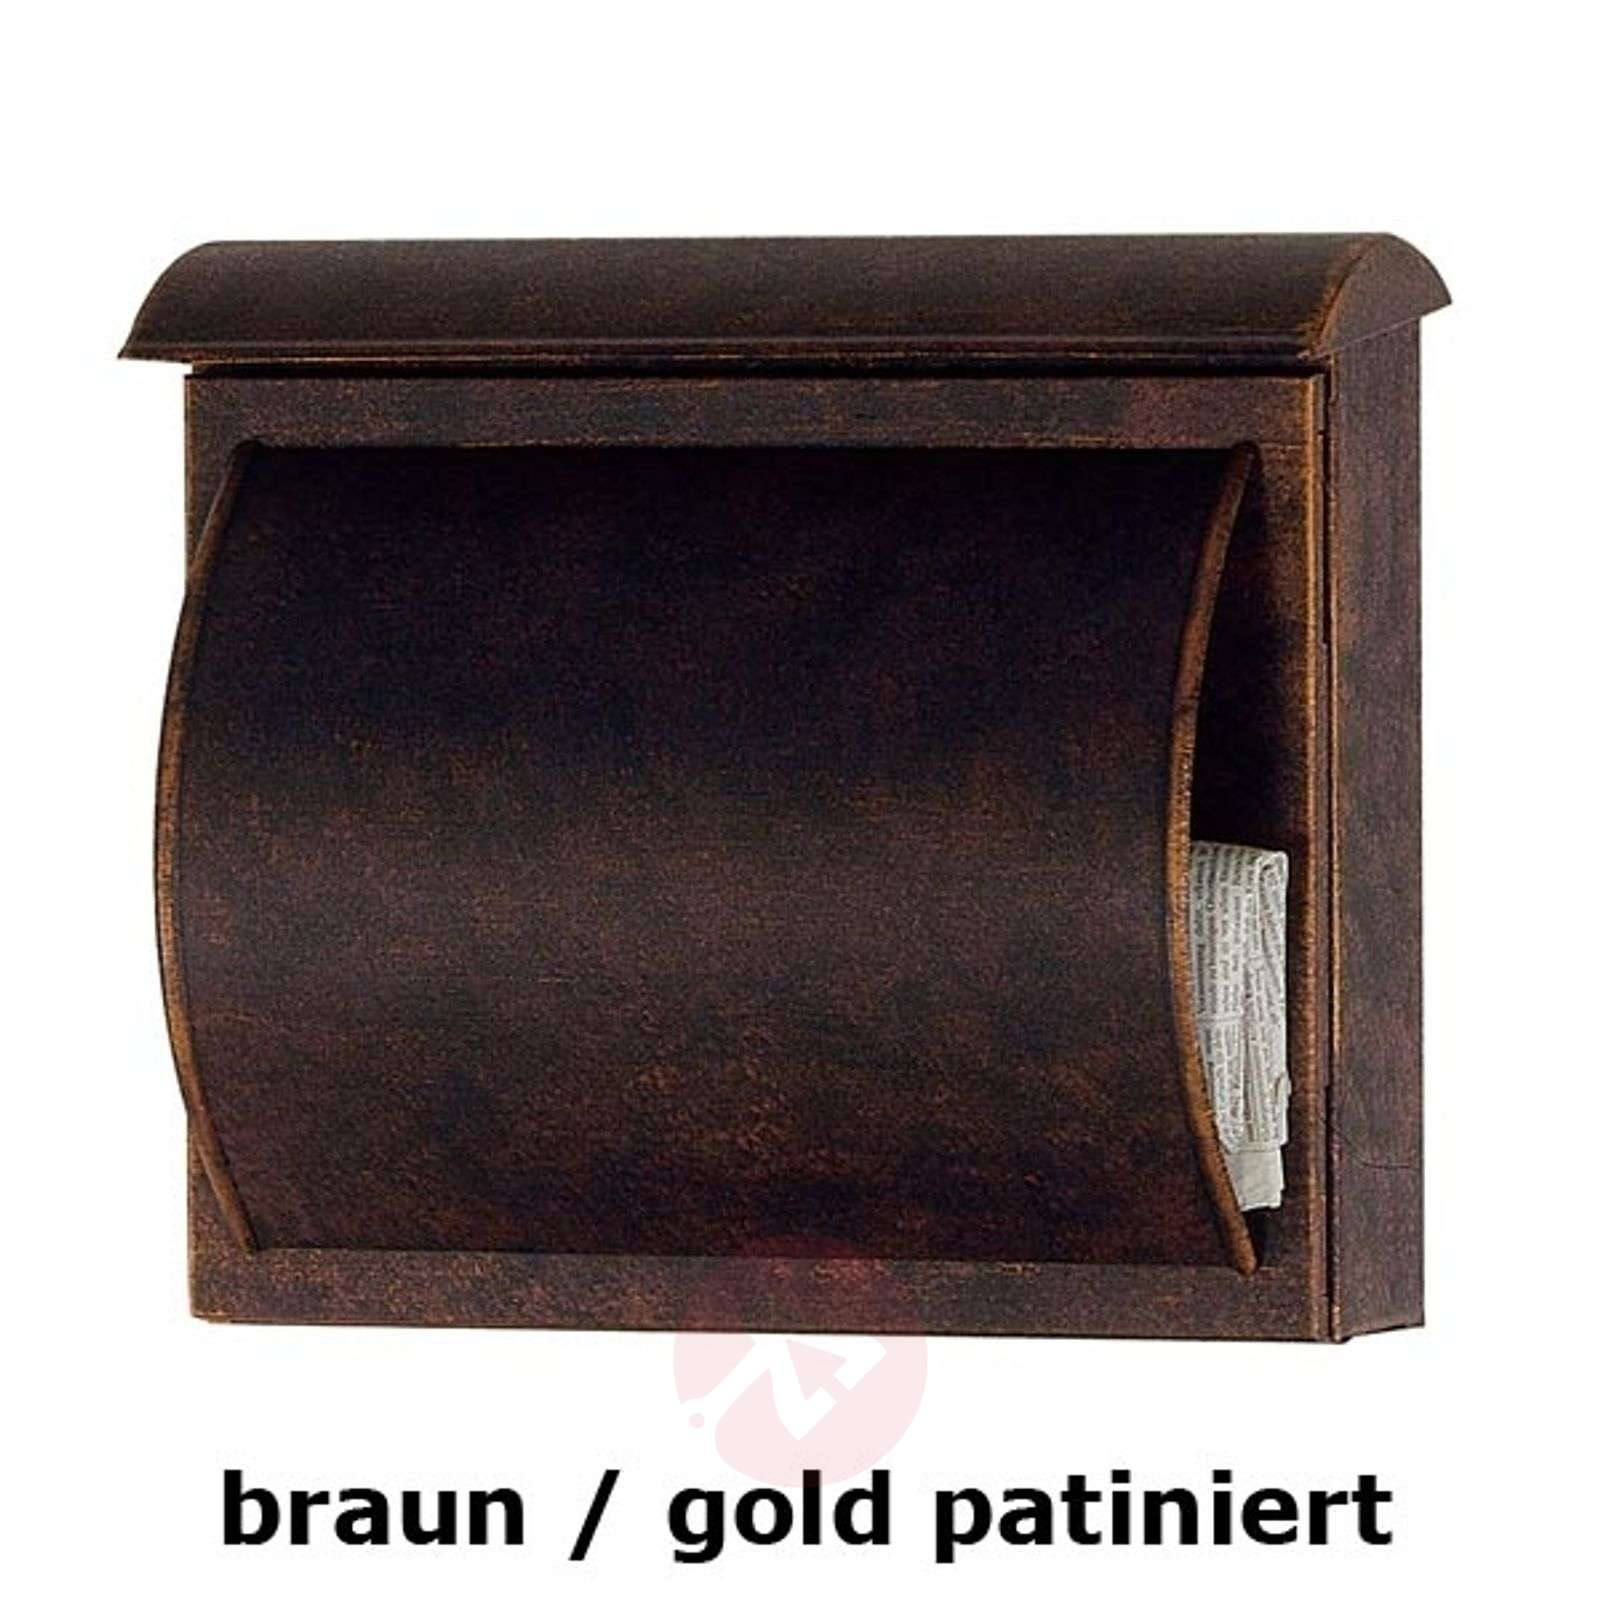 Letterbox TORES brown / gold patinated-4502084-01